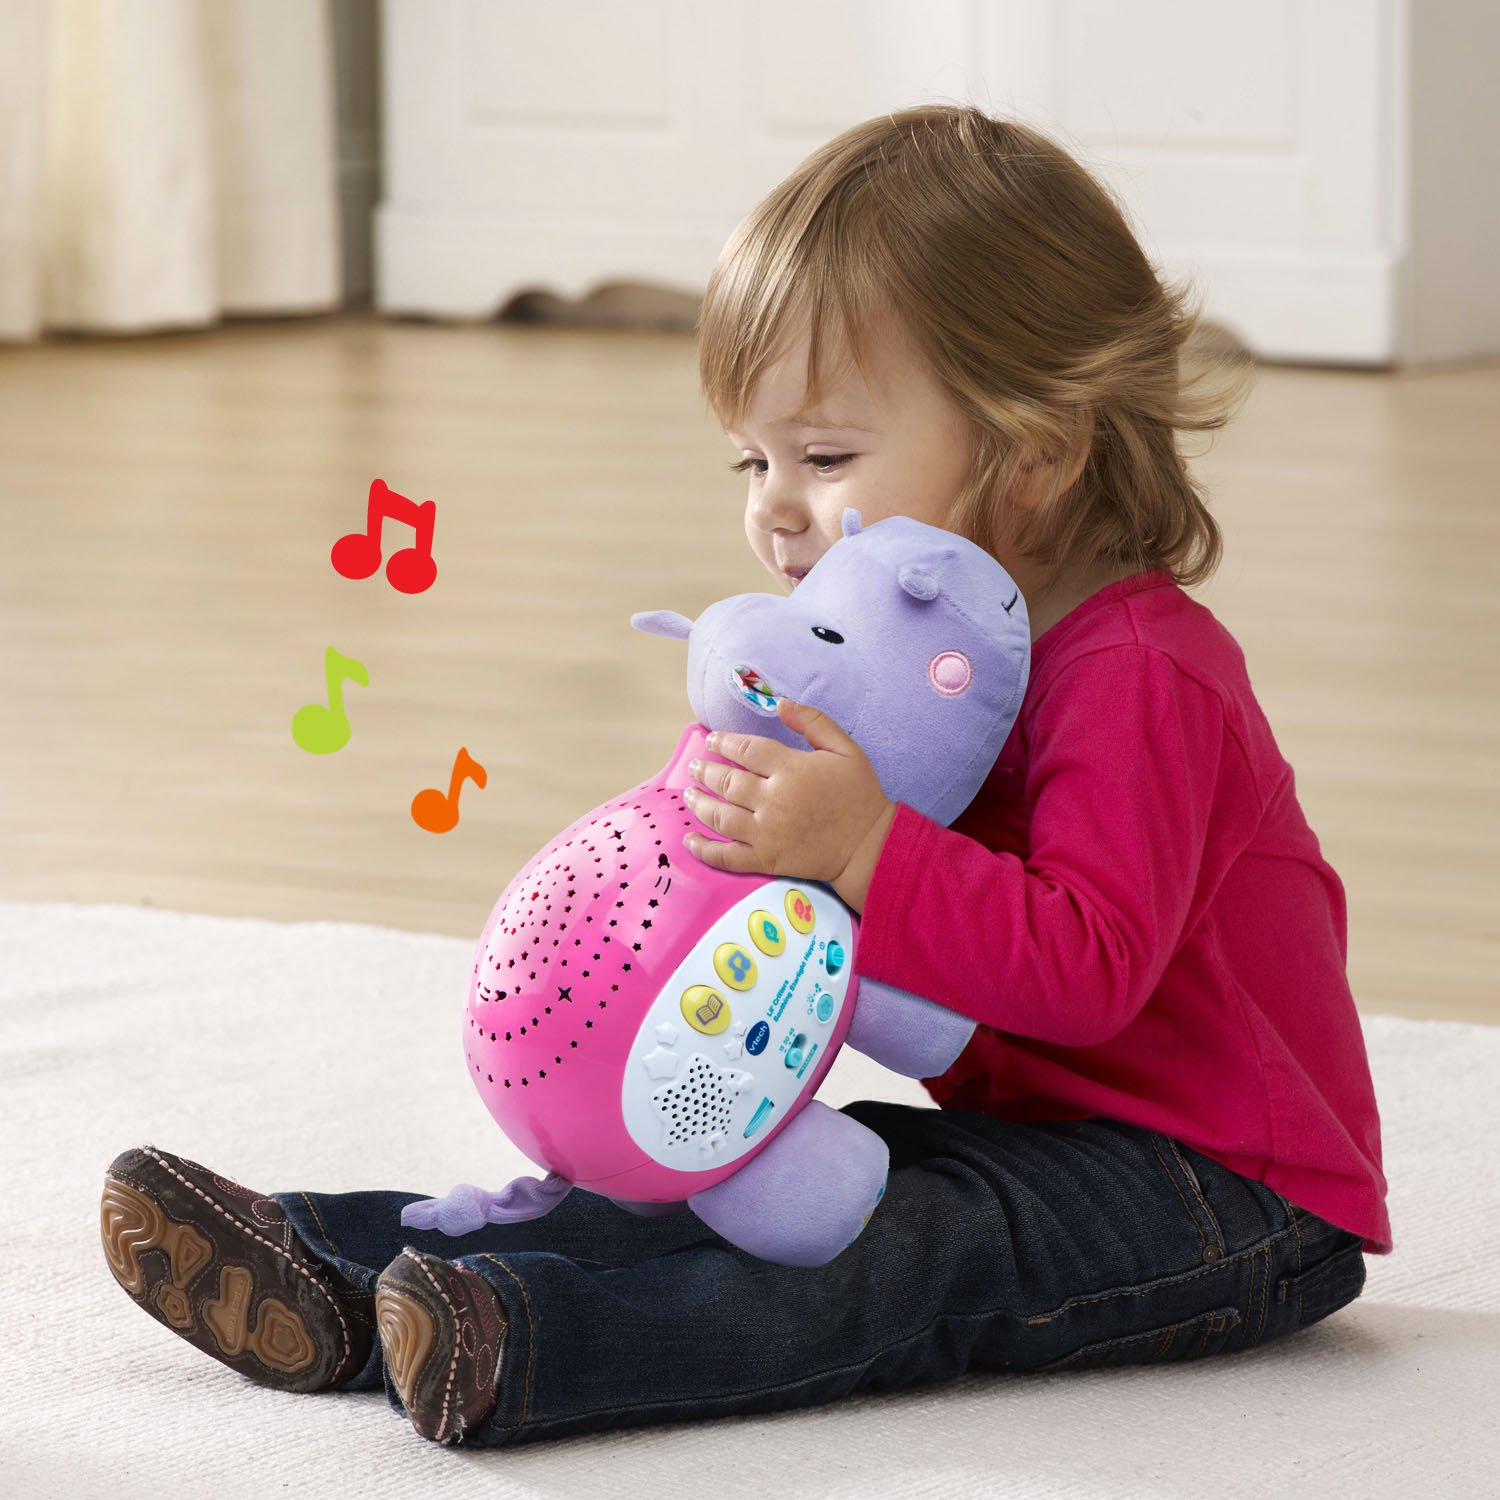 VTech Baby Lil' Critters Soothing Starlight Hippo, Pink (Amazon Exclusive) by VTech (Image #4)